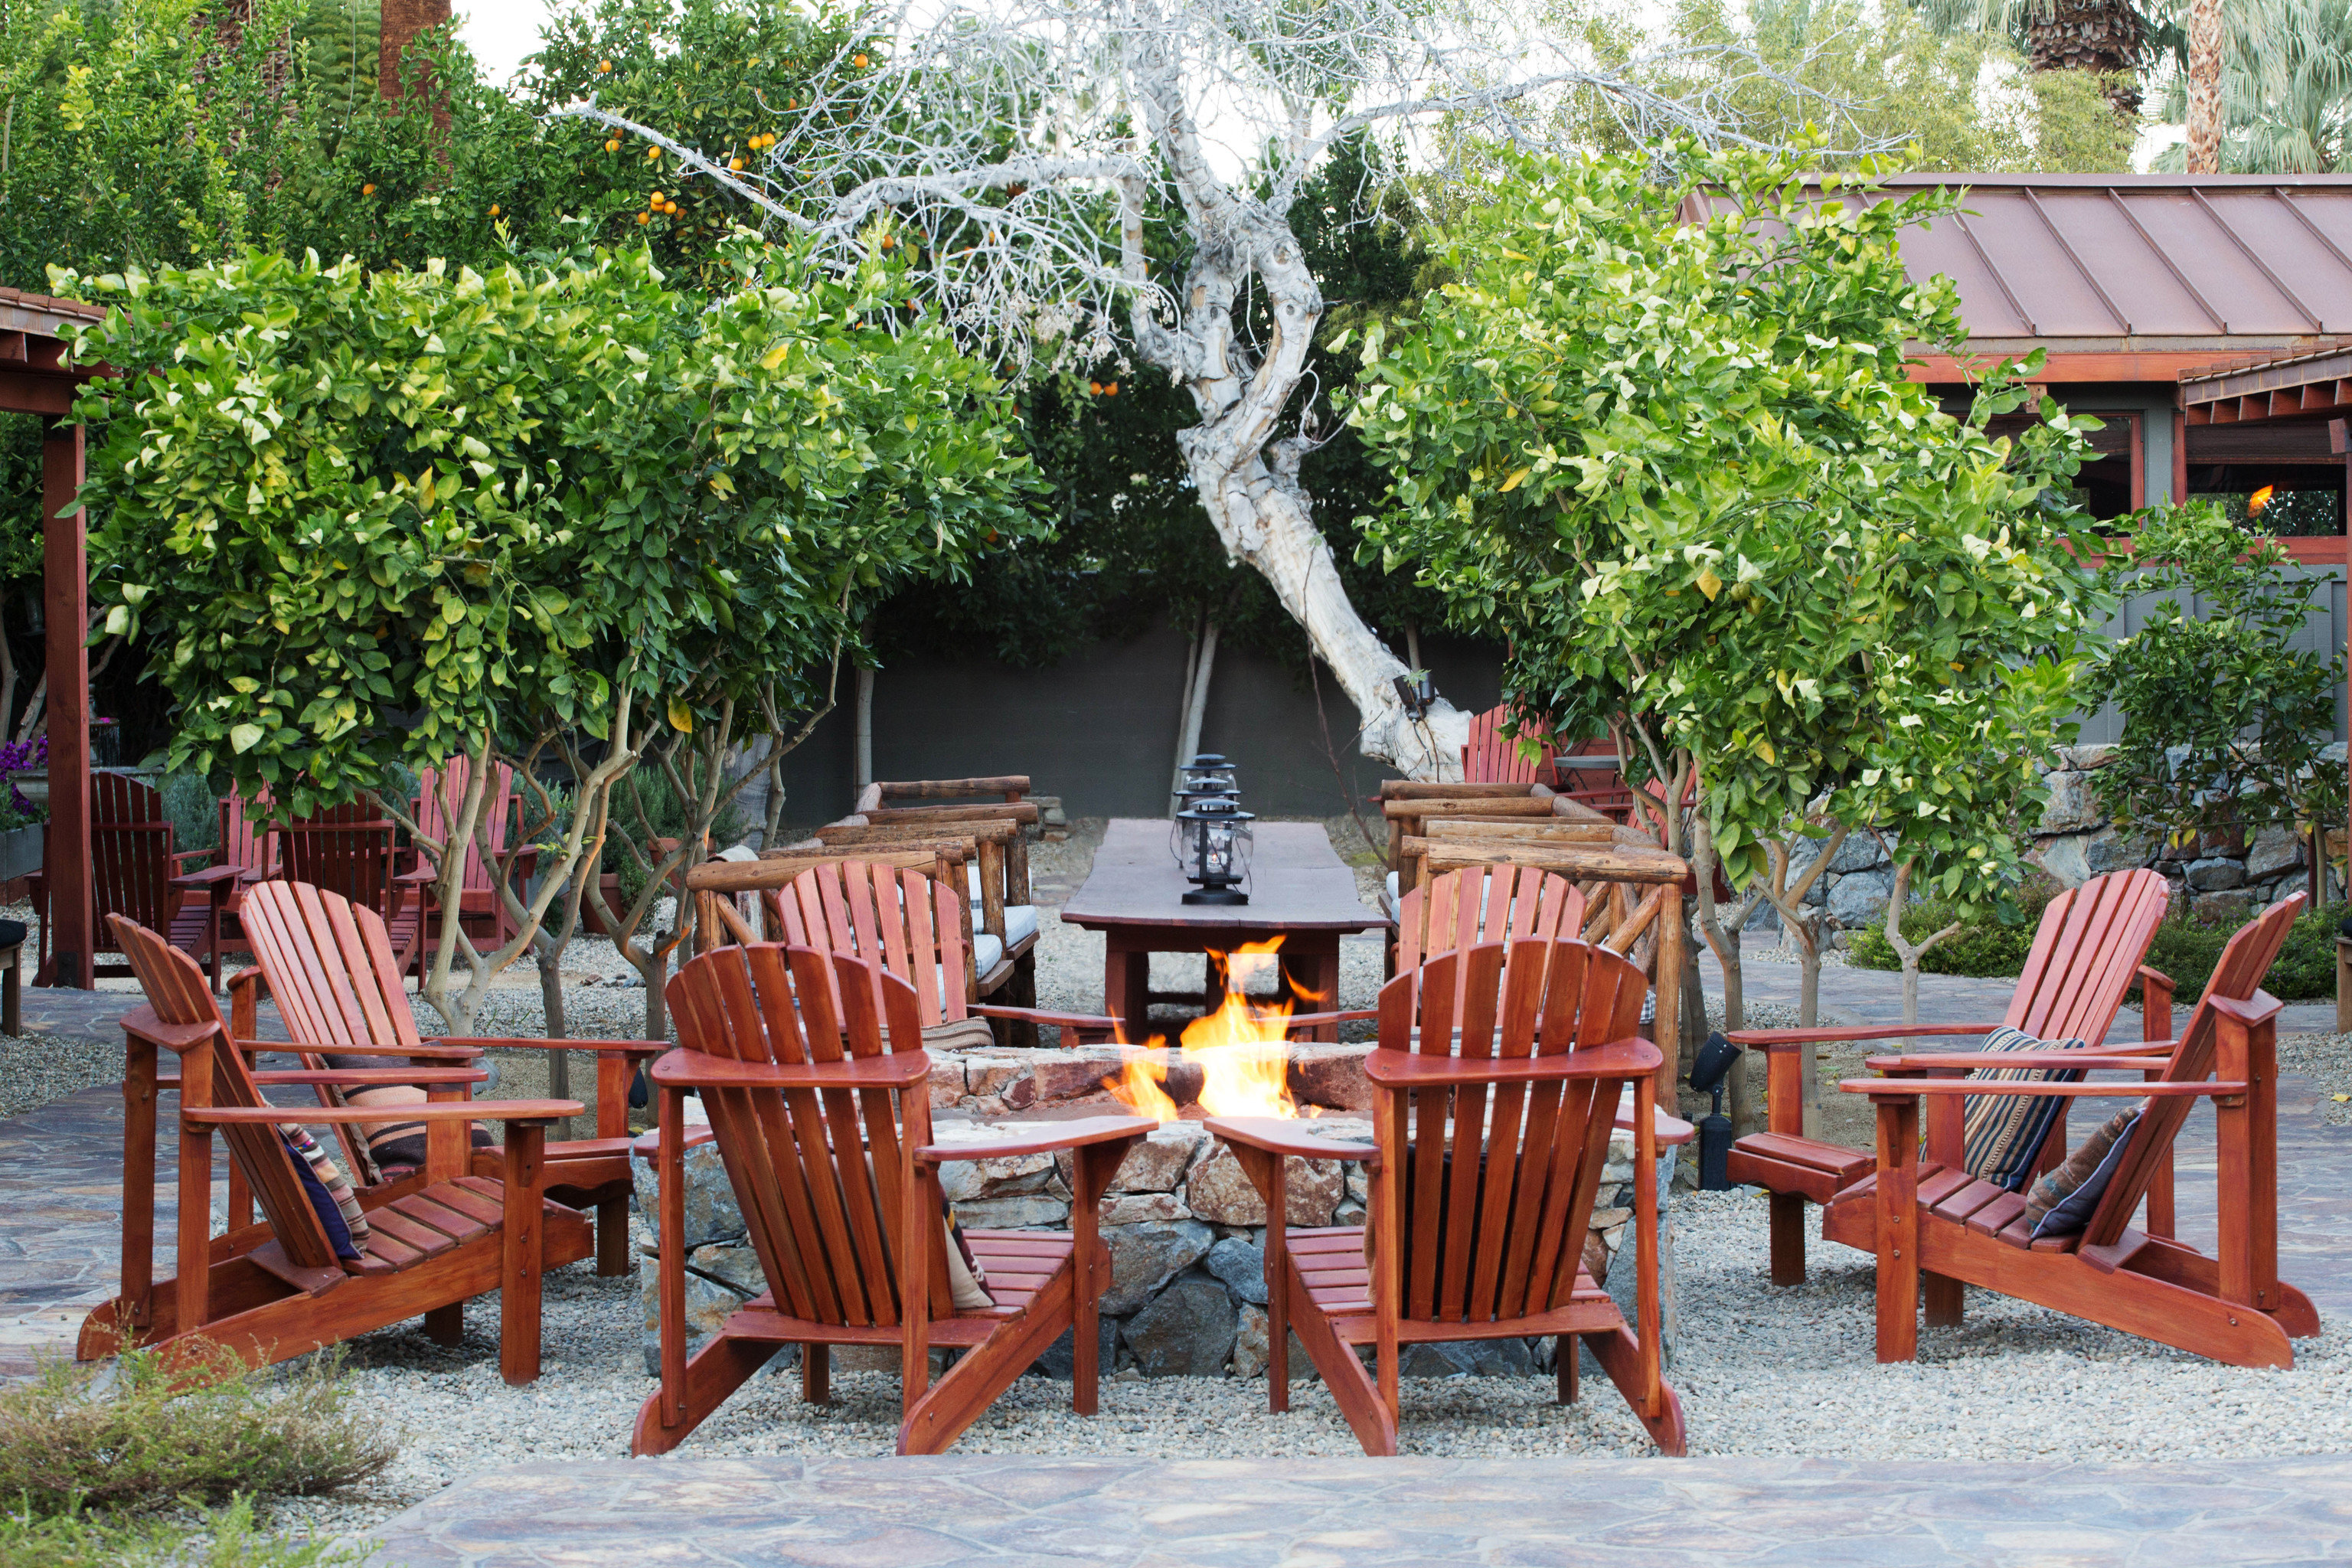 Influencers + Tastemakers Travel Shop Trip Ideas tree outdoor chair table backyard cottage Garden outdoor structure flower restaurant Resort Dining yard set porch area surrounded